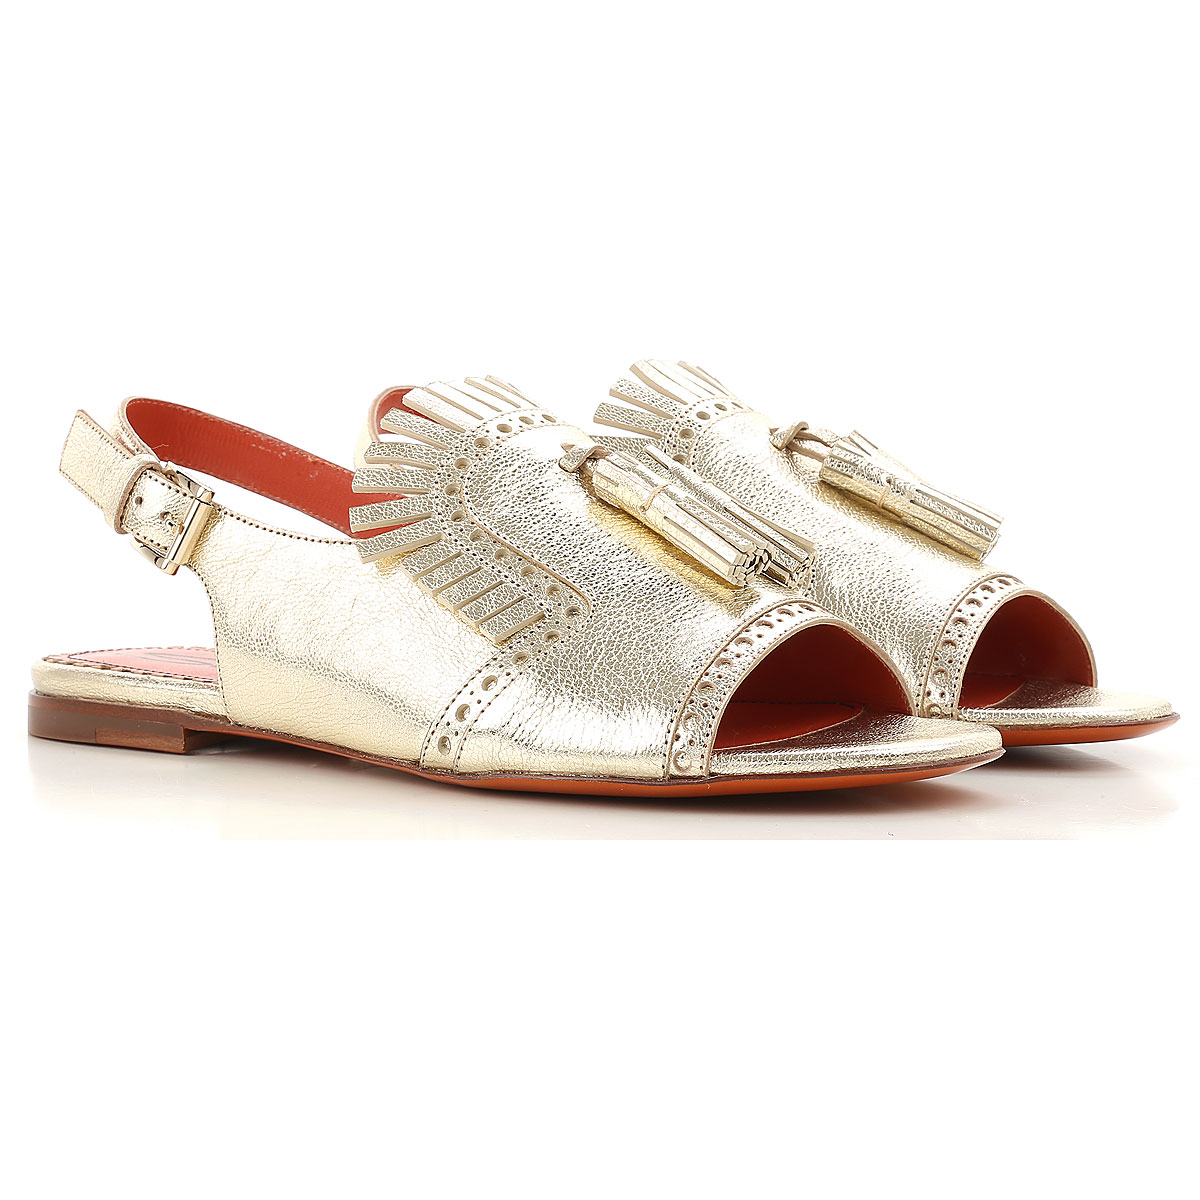 Santoni Sandals for Women in Outlet Gold USA - GOOFASH